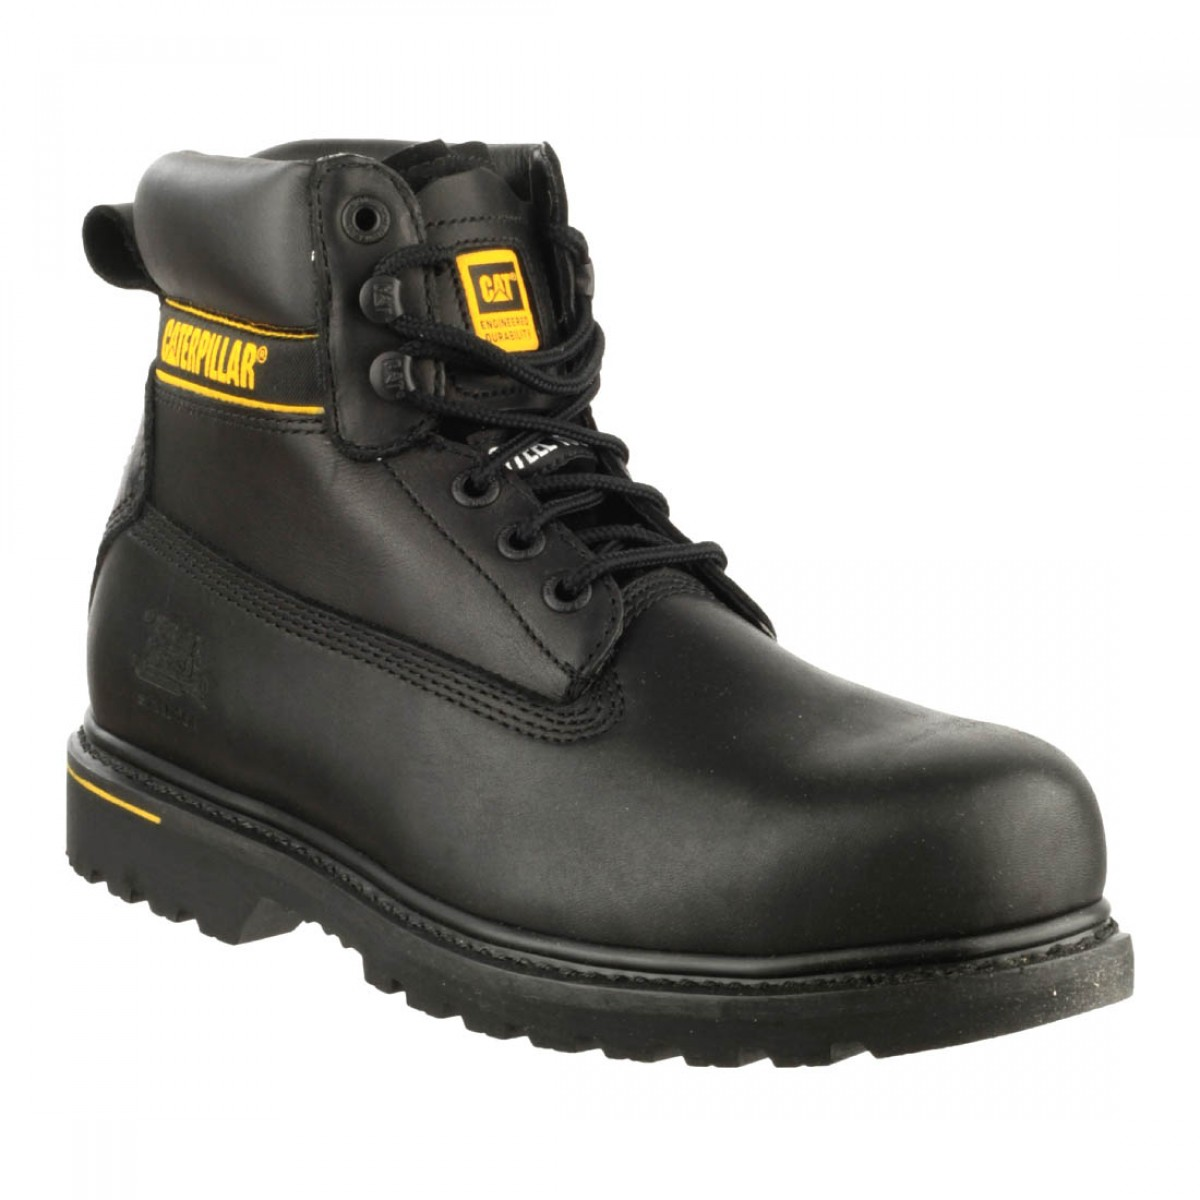 CAT Holton SB Black Leather Safety Boots - Charnwood ...